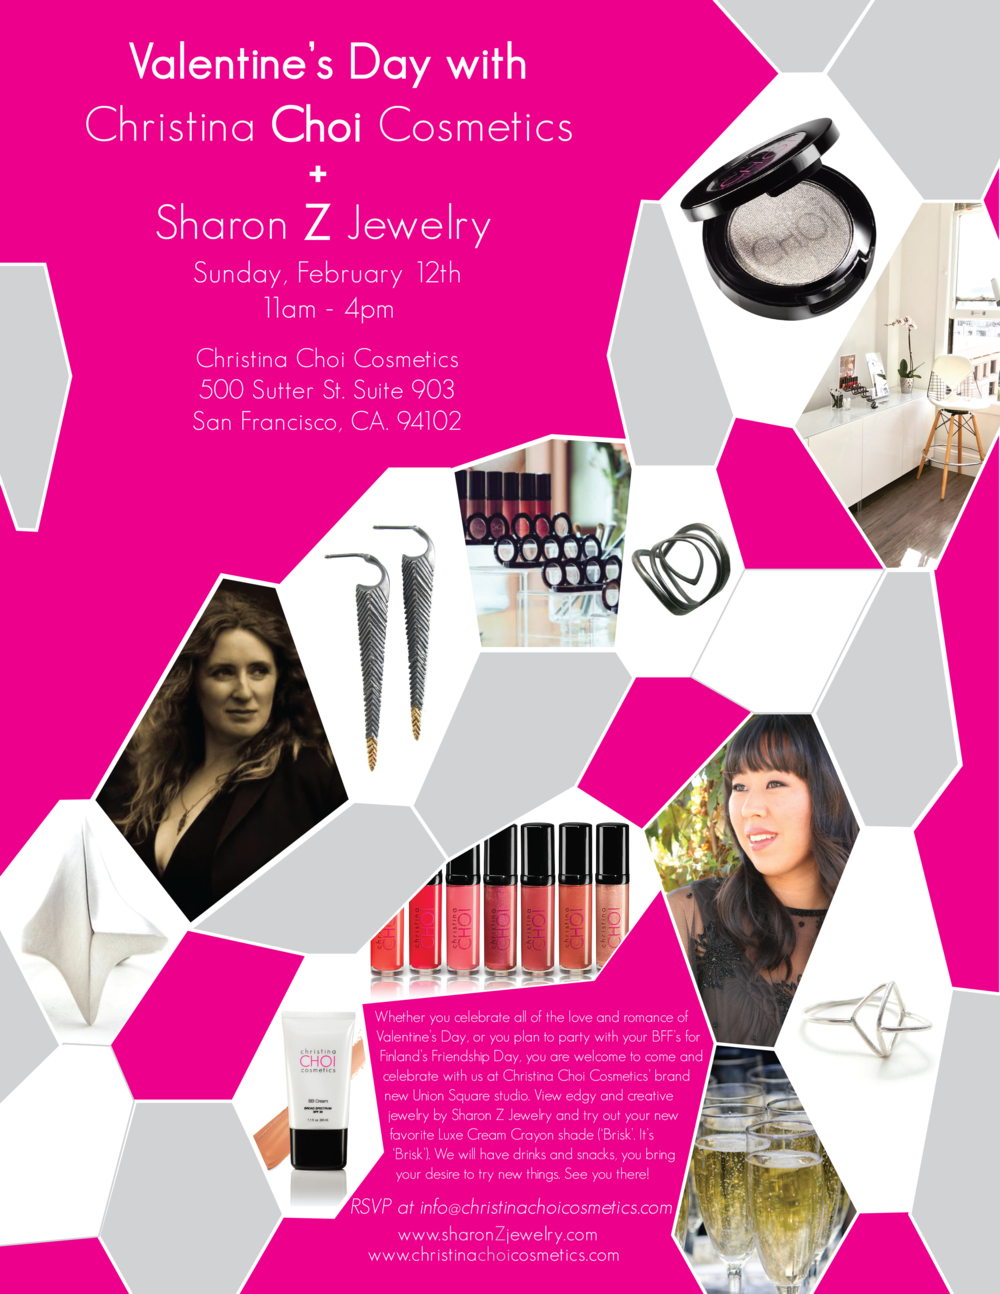 Valentine's Day at Christina Choi Cosmetics with Sharon Z Jewelry